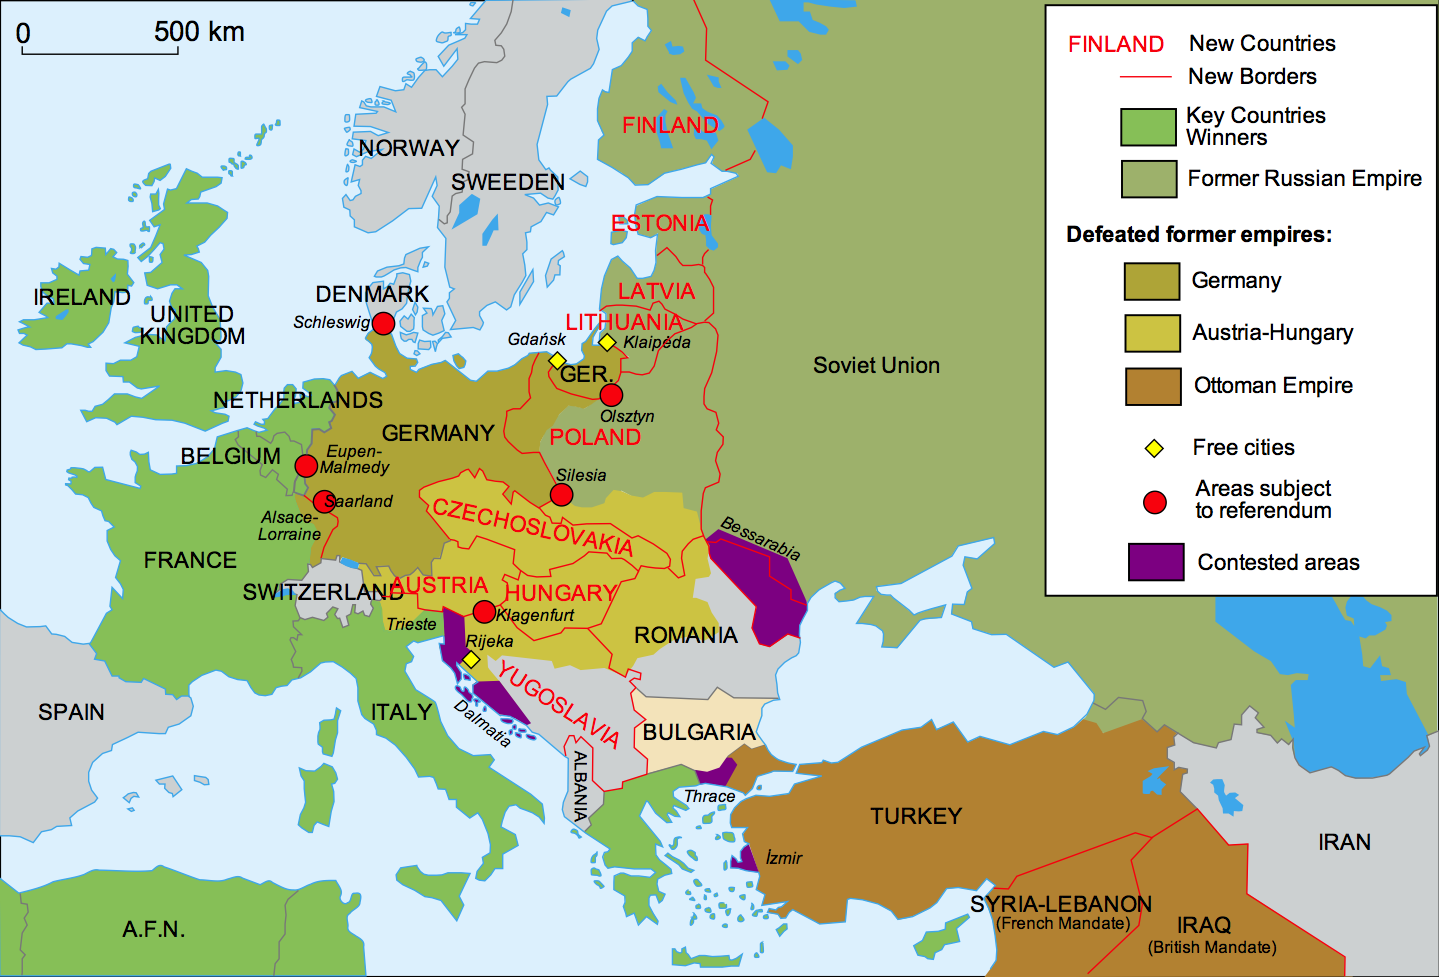 Changes To Europe After World War I